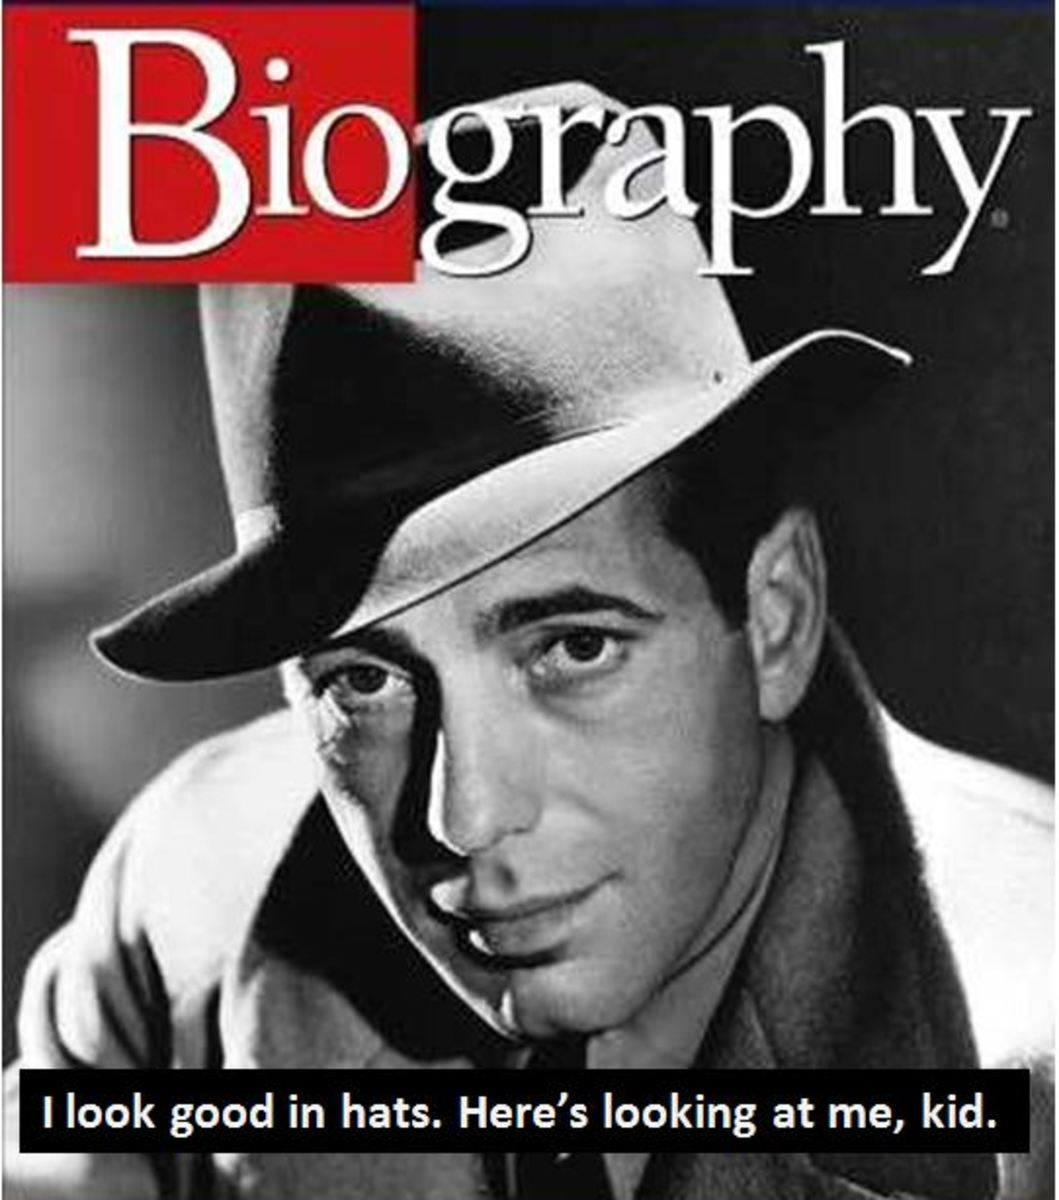 Humphrey Bogart on Biography Cover